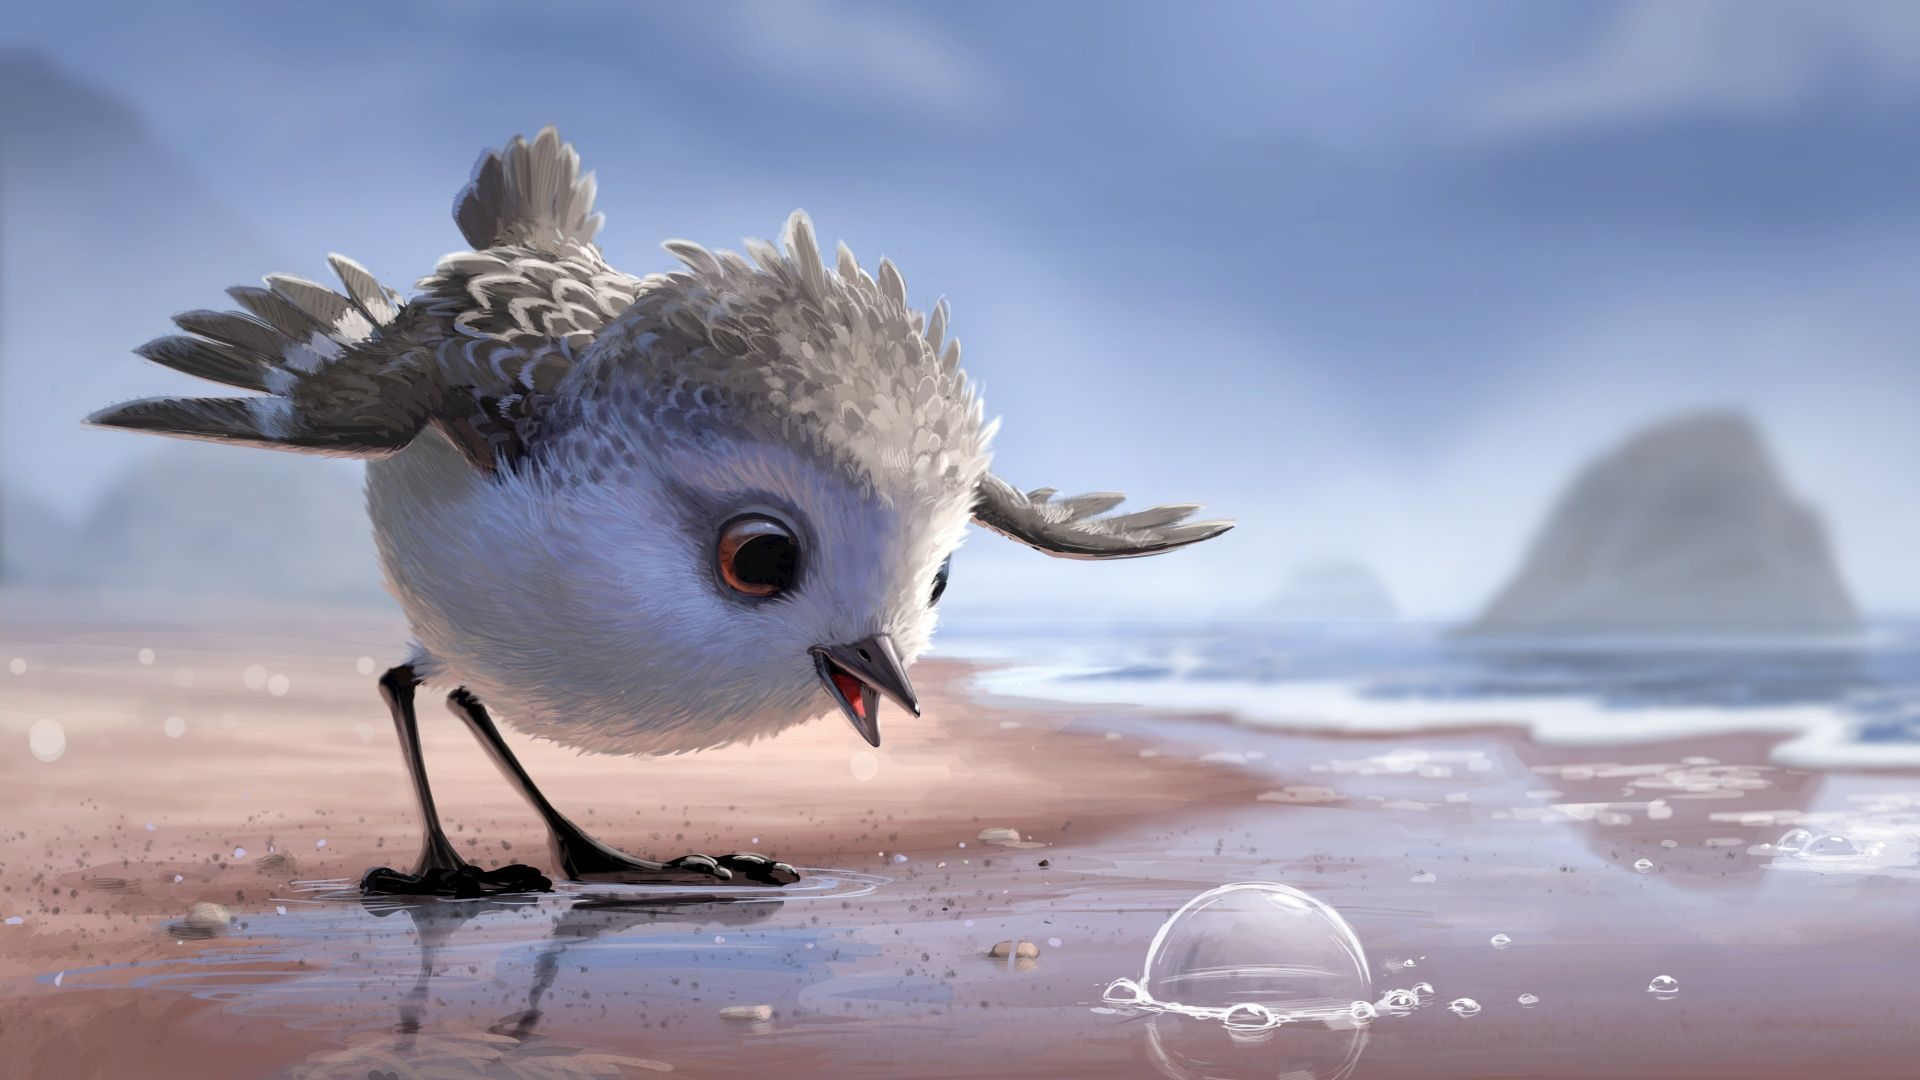 Pixar Movie Piper Art Hd Wallpaper 1920 X 1080 Need Iphone 6s Plus Wallpaper Background For Iphone6splus Follow Pixar Shorts Piper Pixar Pixar Movies